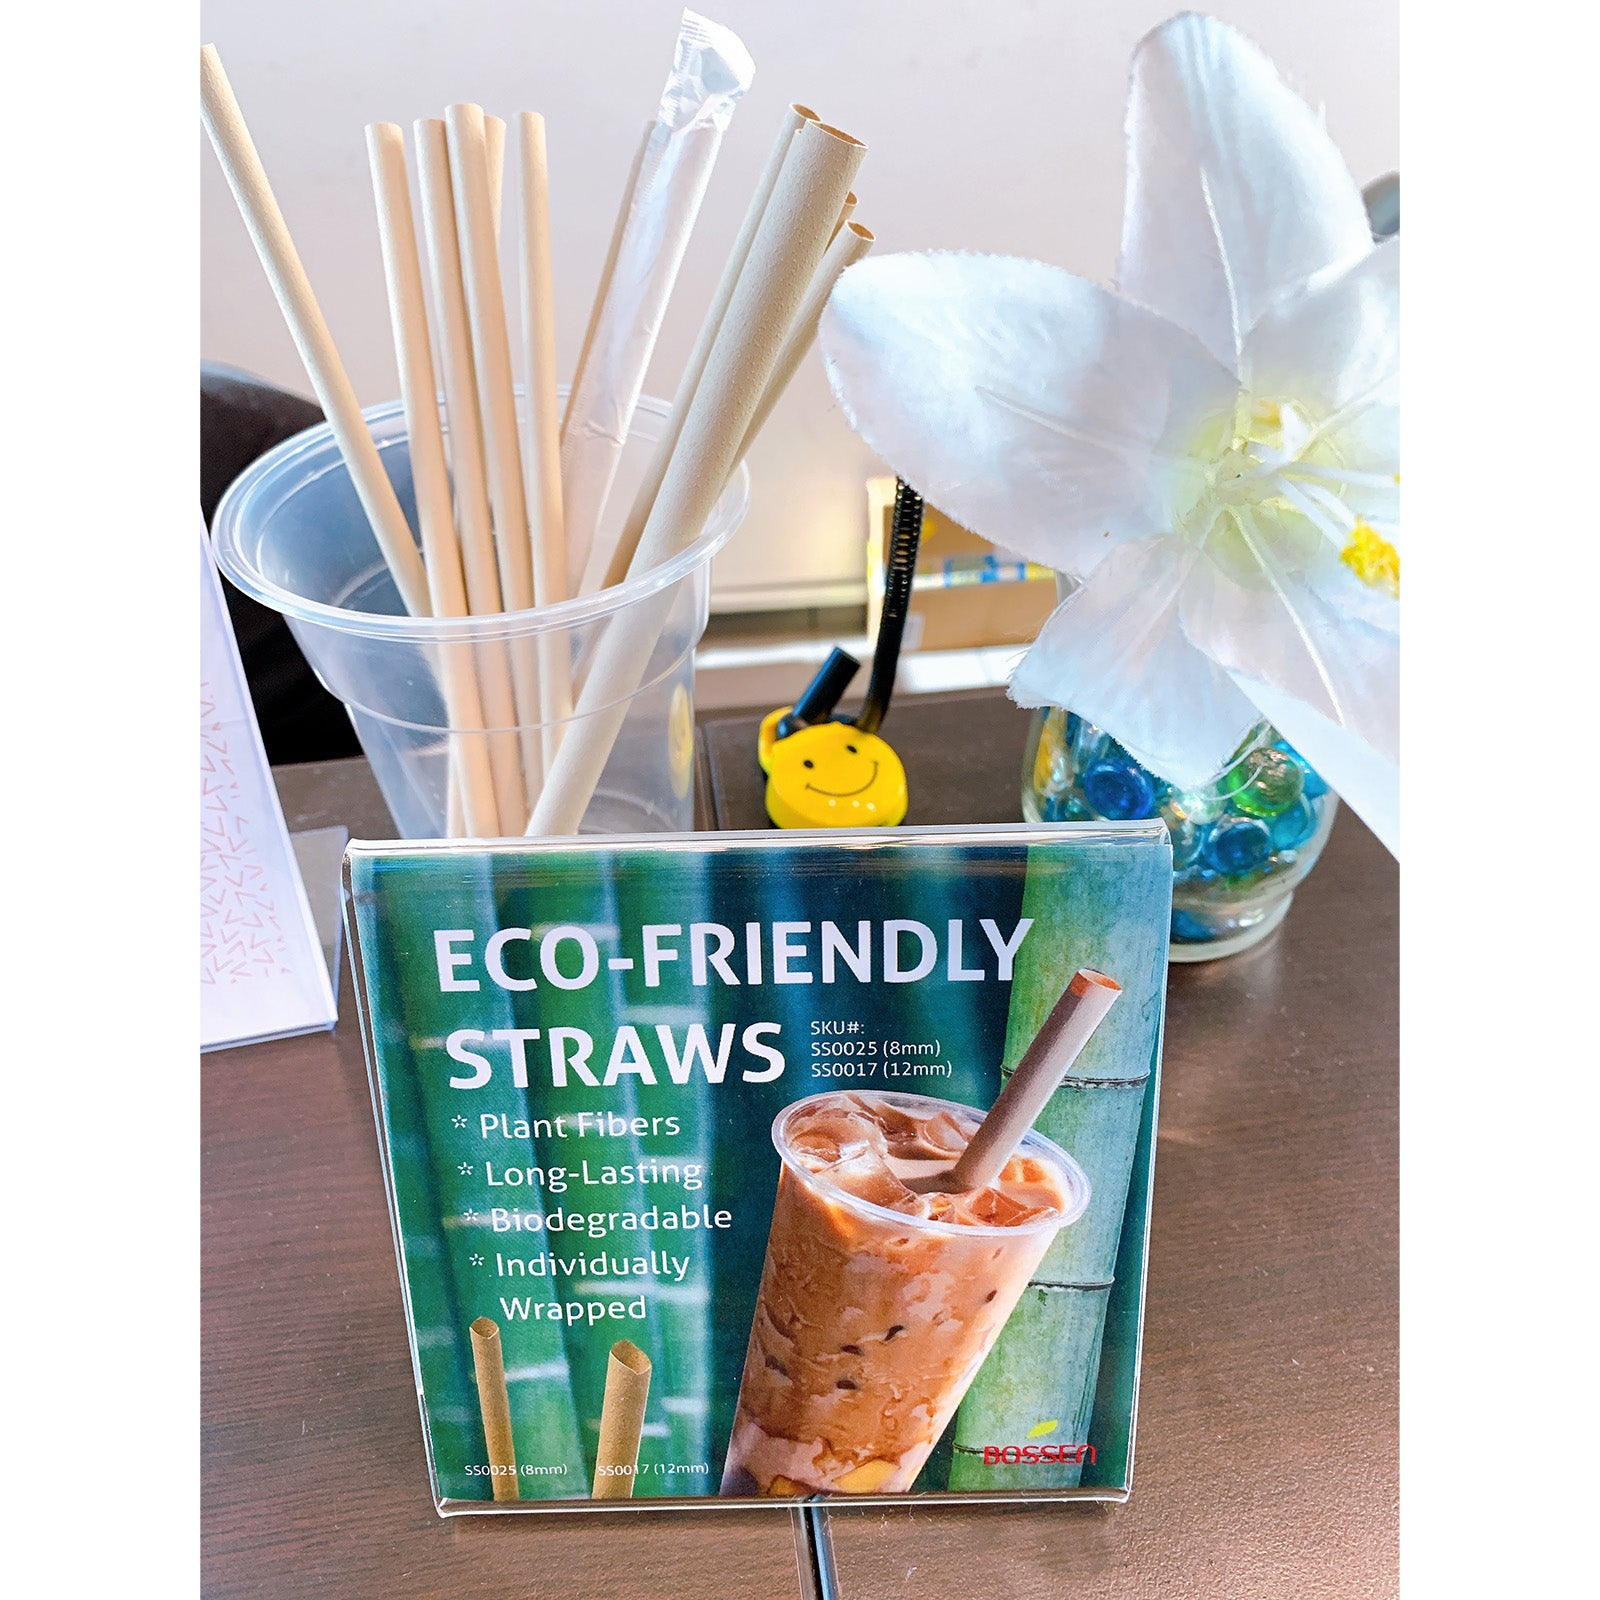 Eco-Friendly Boba Straws, 12mm Paper Wrapped (21cm) in use